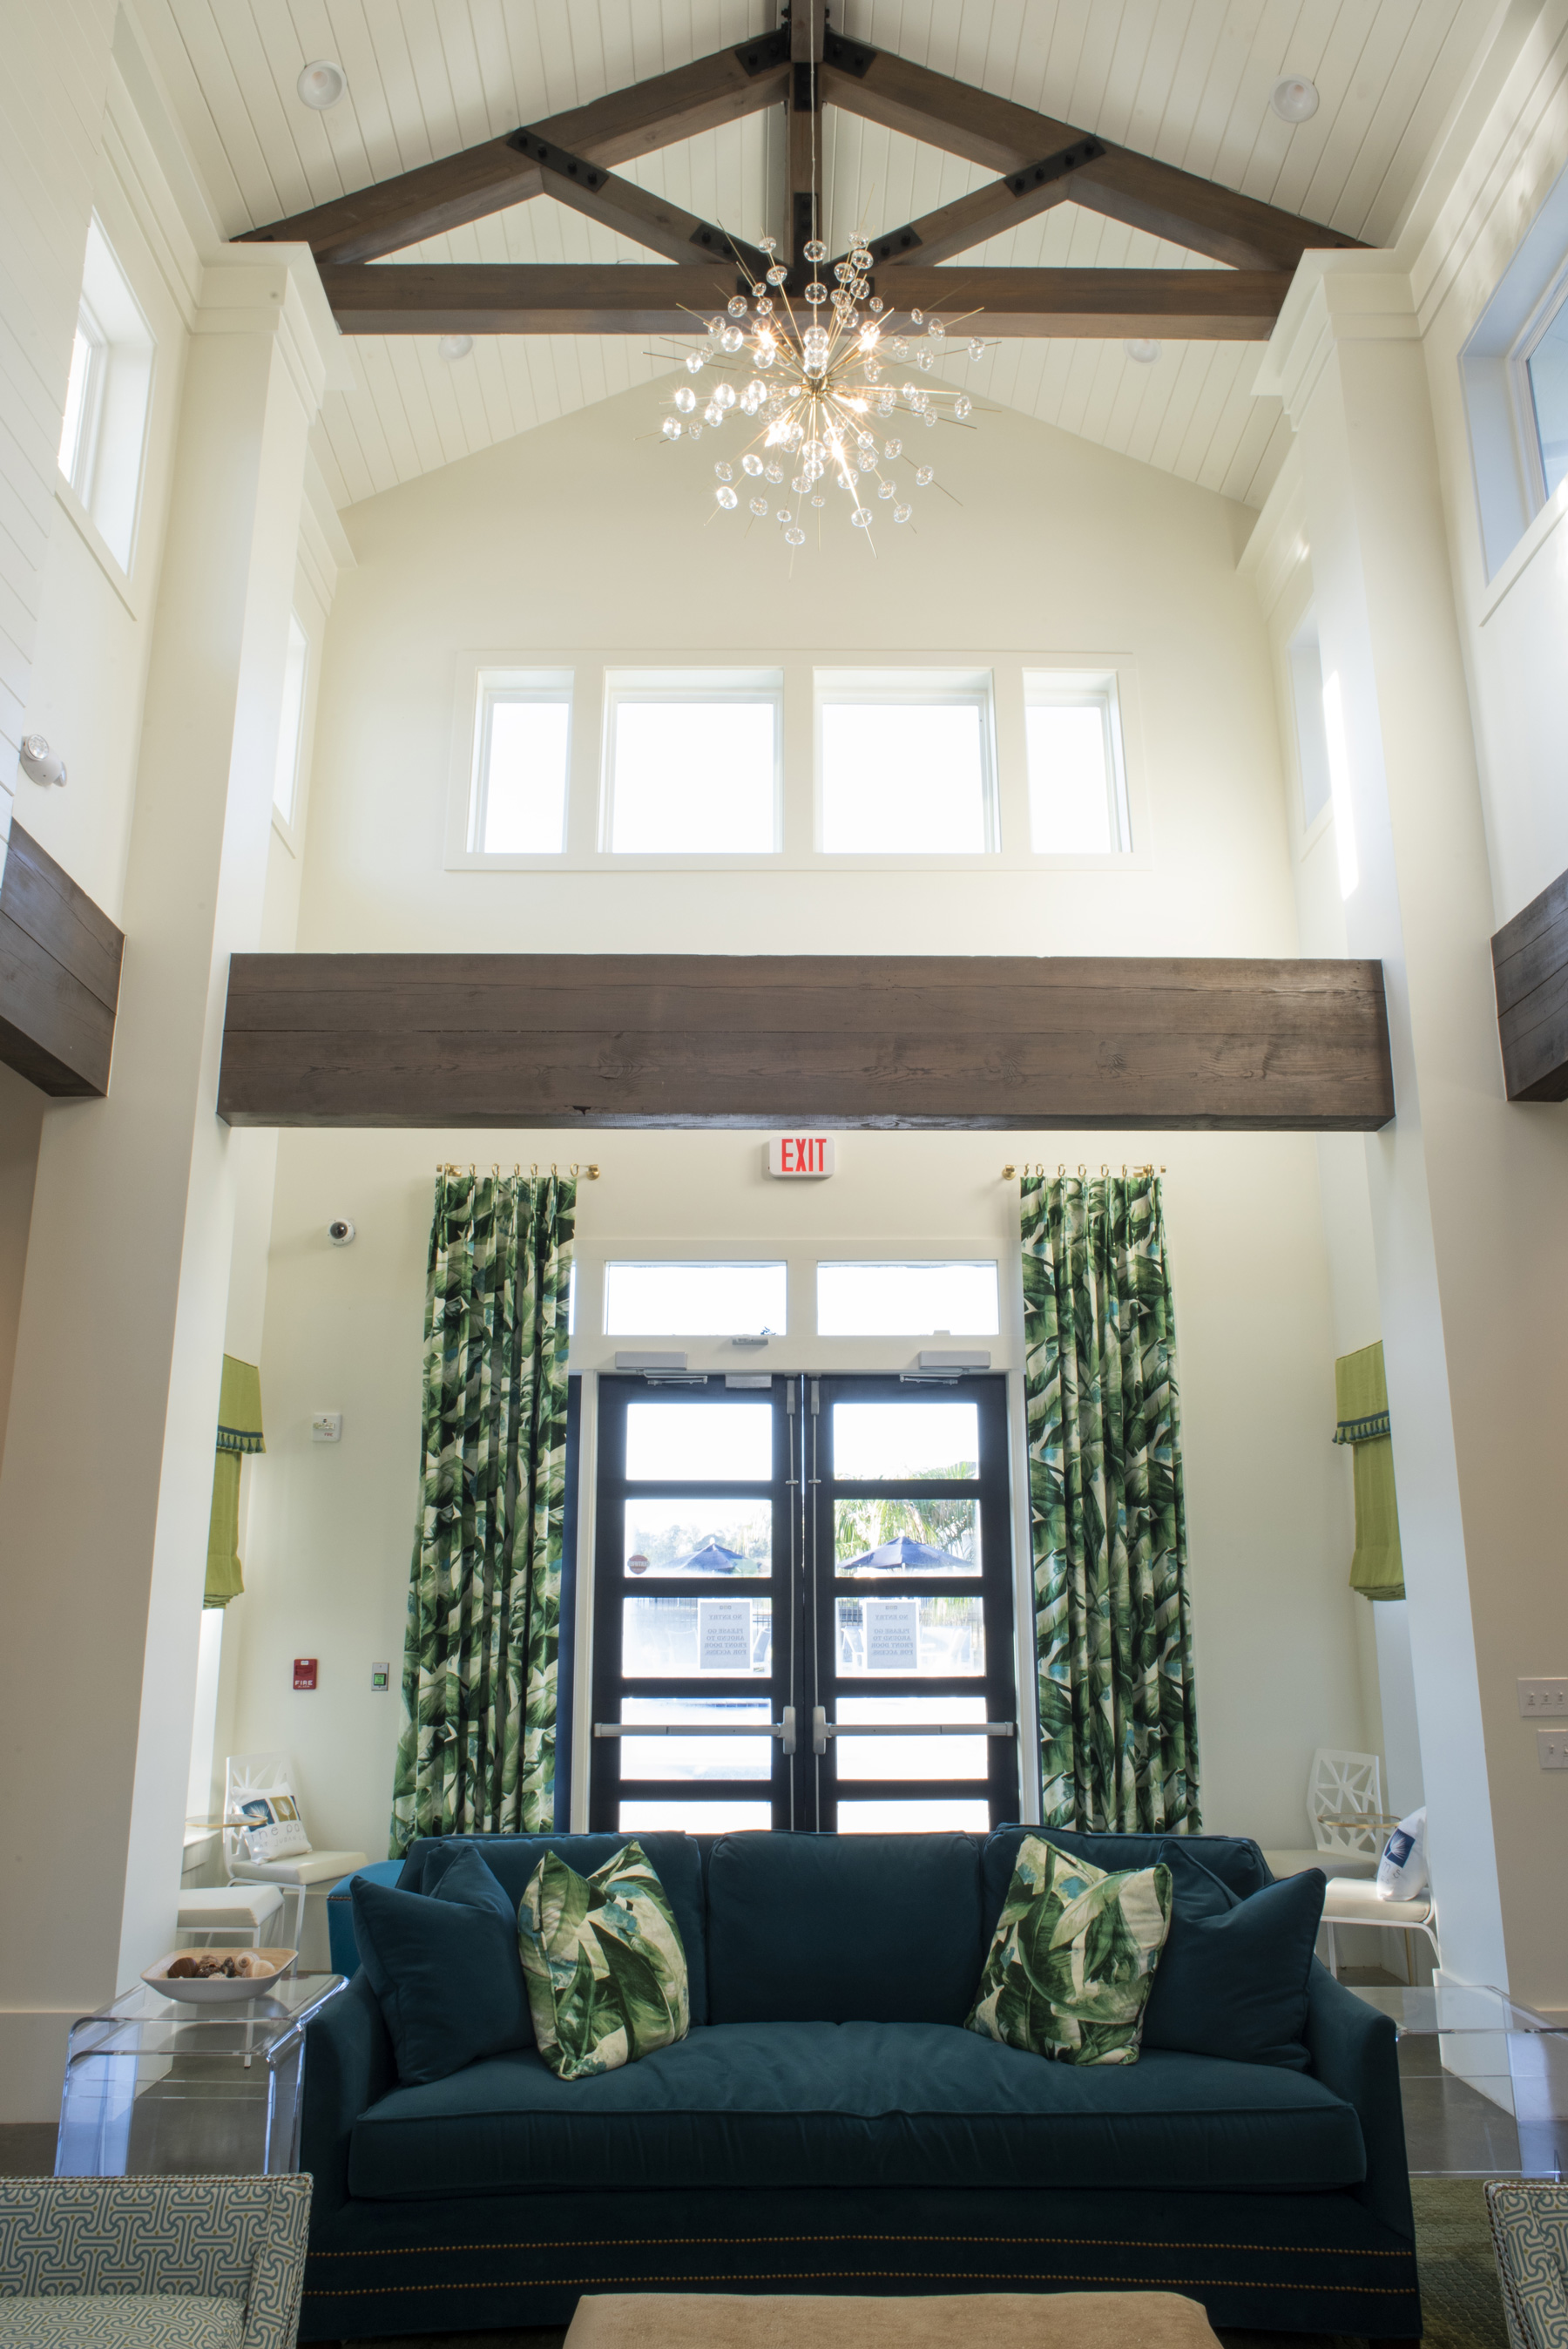 Elevated Ceilings at The Palms at Juban Lakes Apartments in Denham Springs, Louisiana